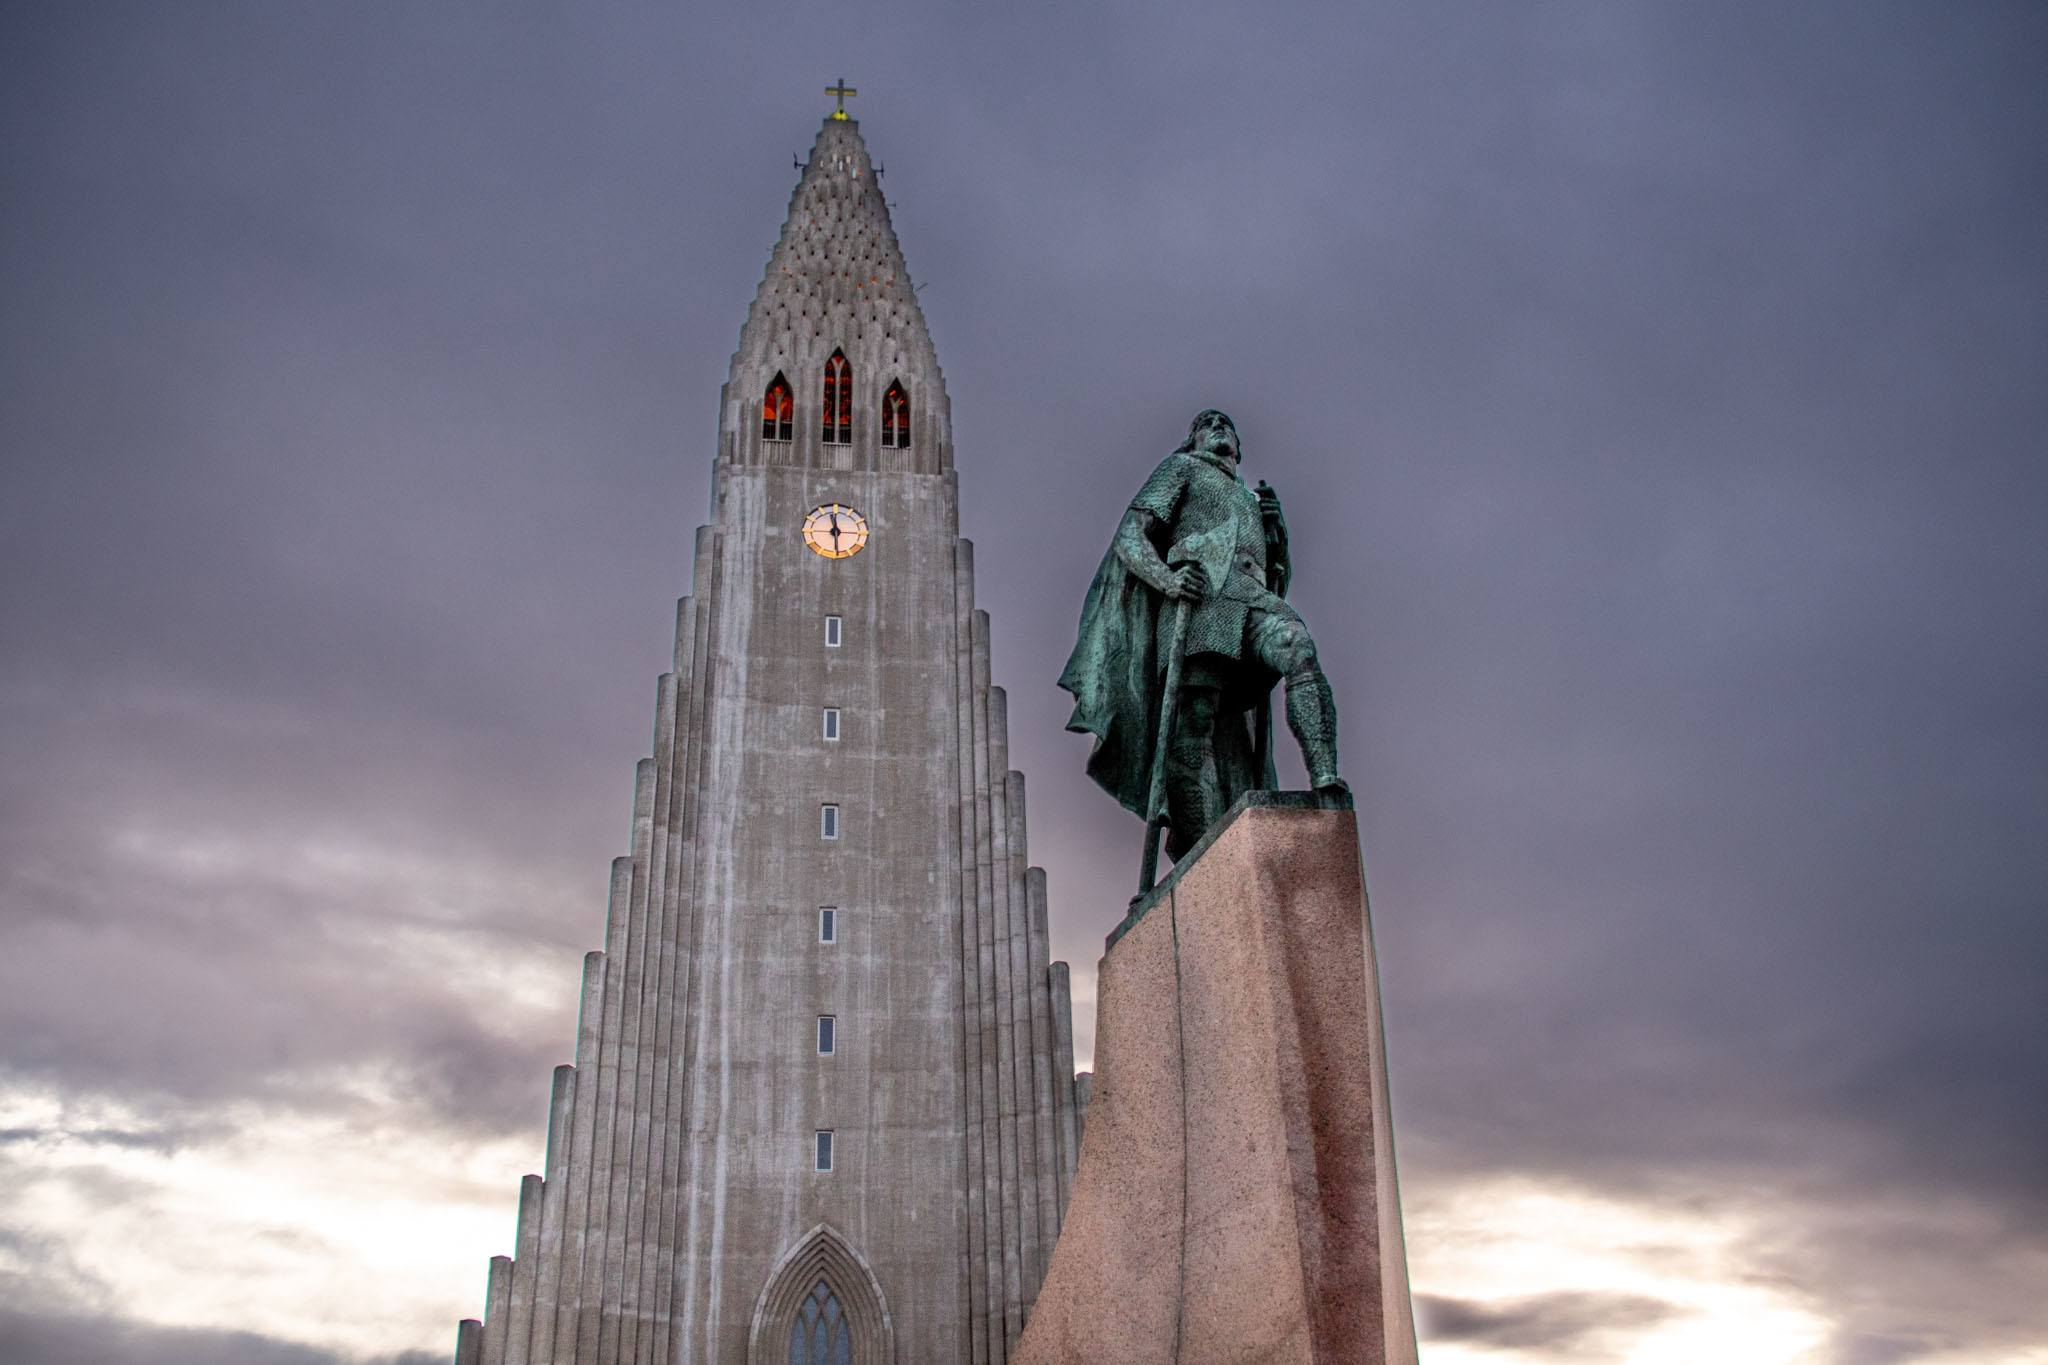 Leif Ericsson statue in front of the Hallgrimskirkja church in Reykjavik.